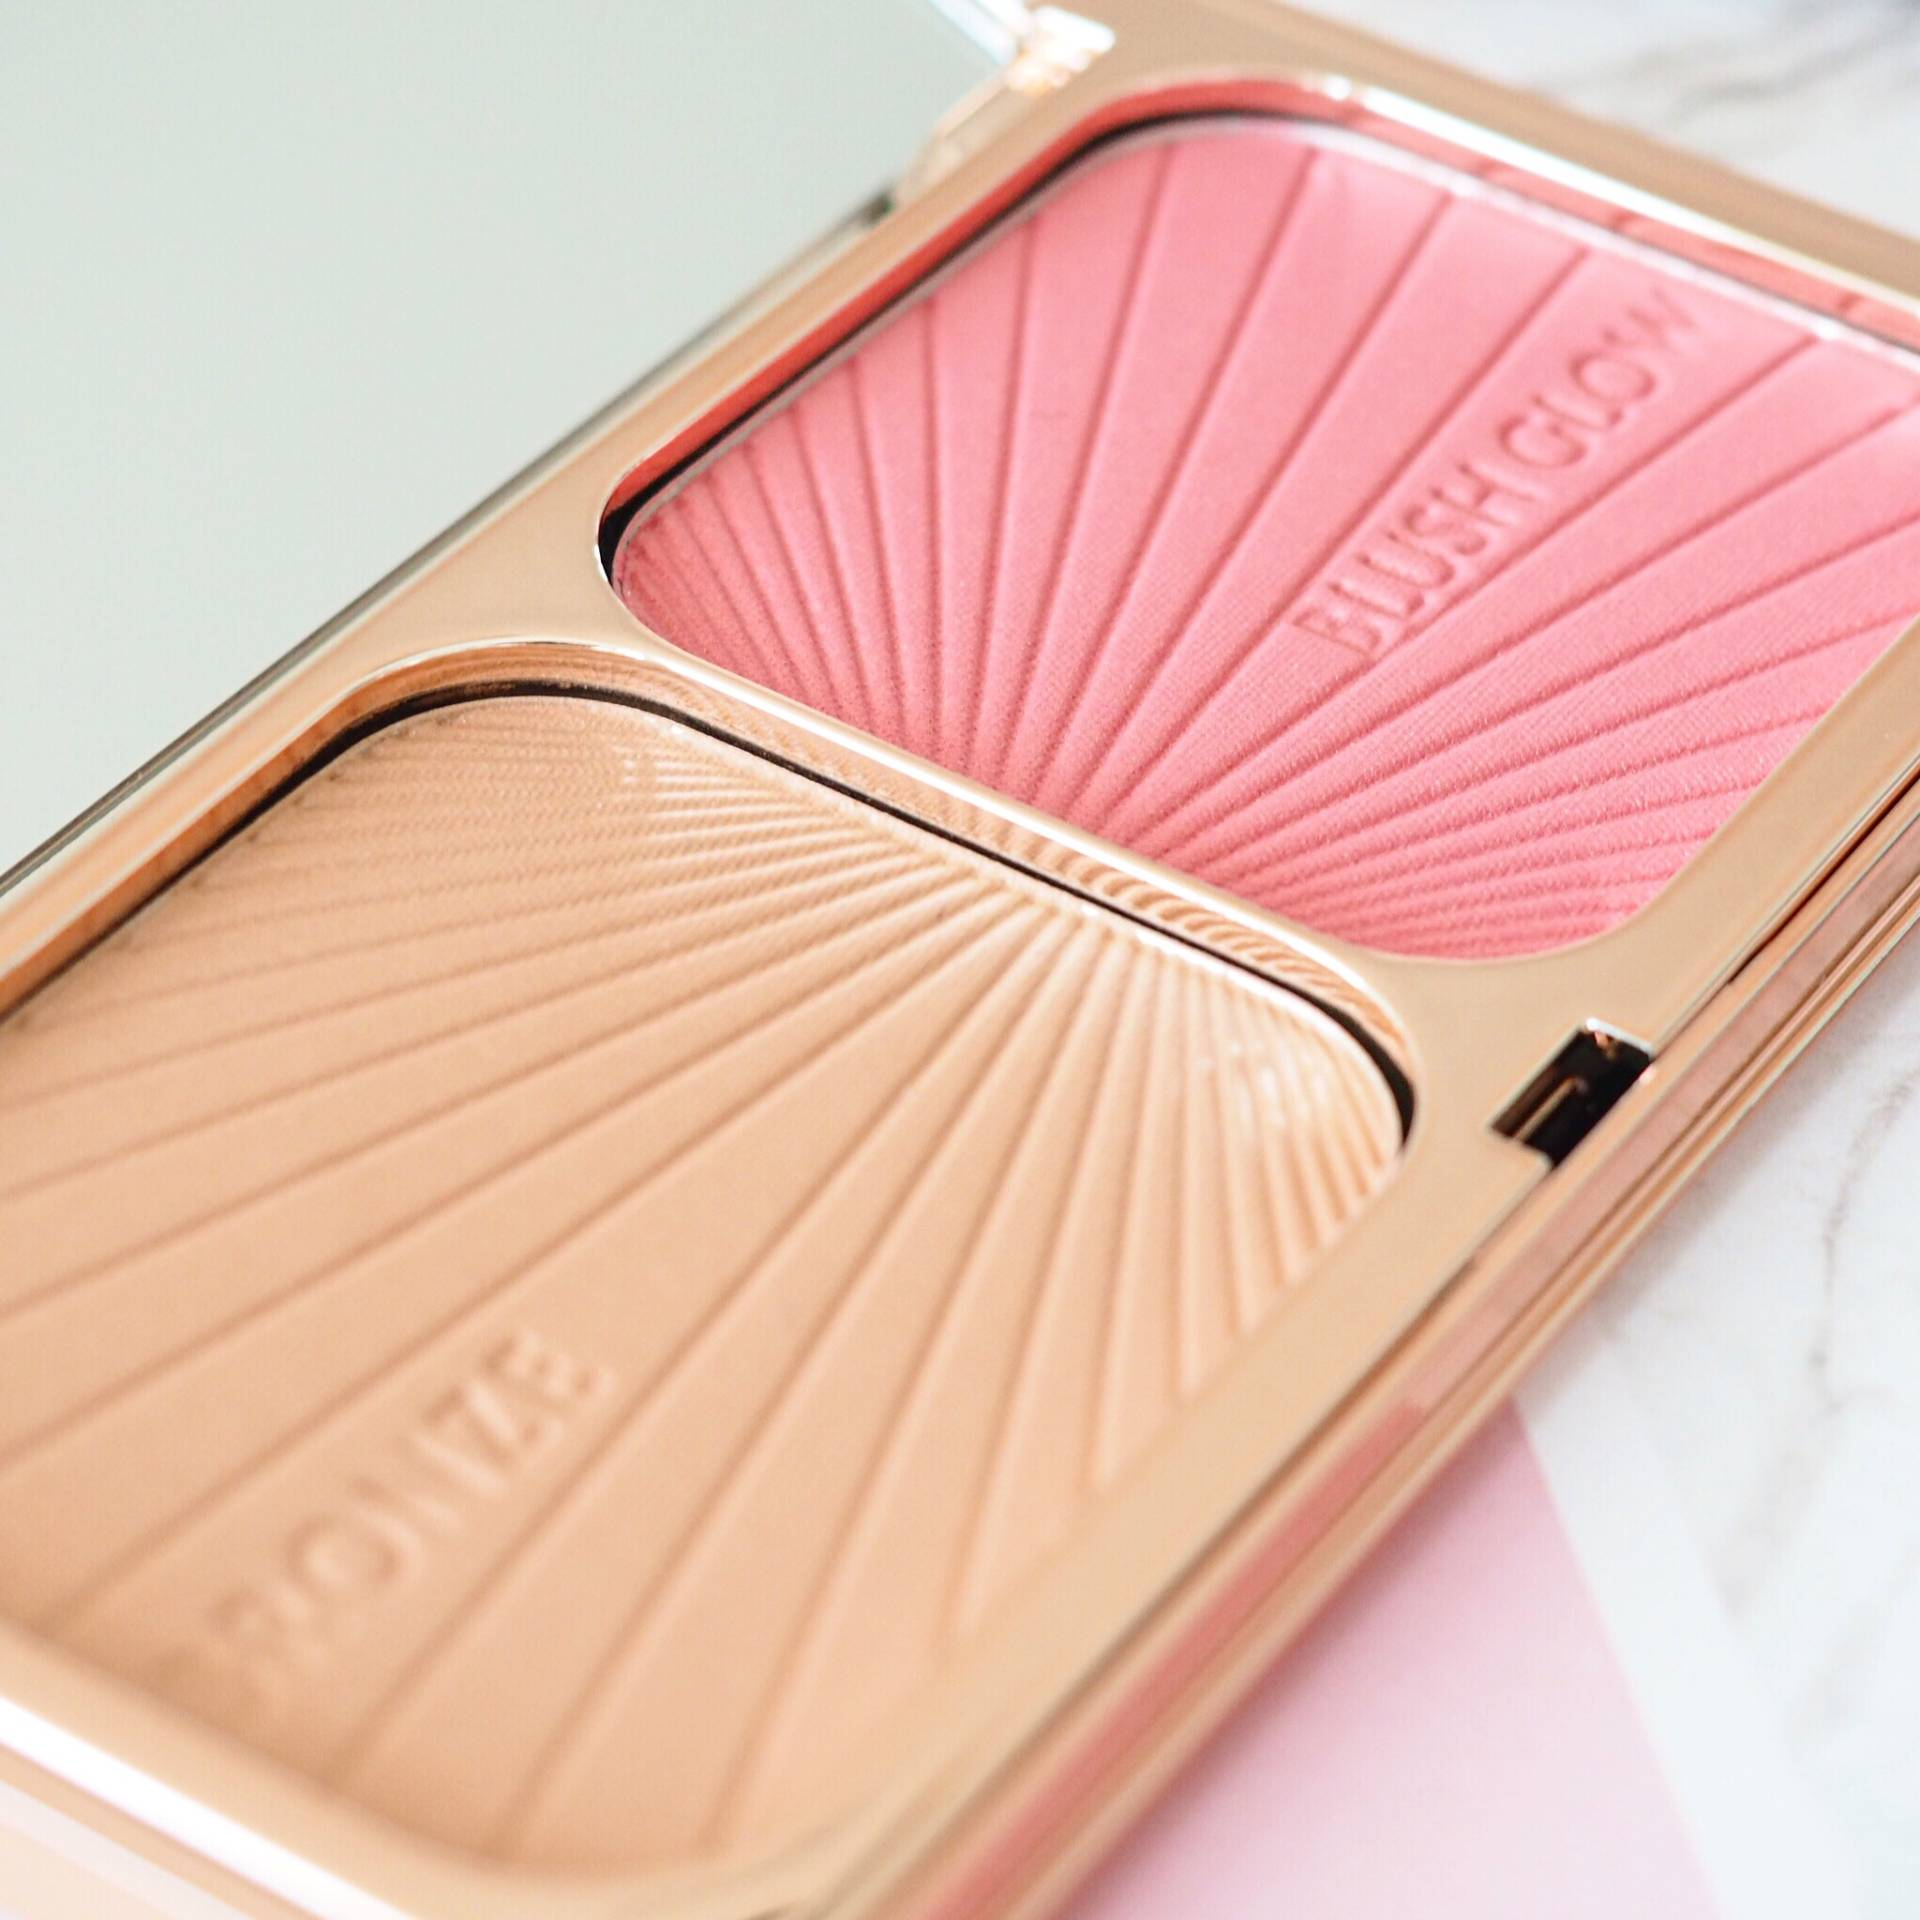 Charlotte Tilbury Bronze and Blush Glow Palette